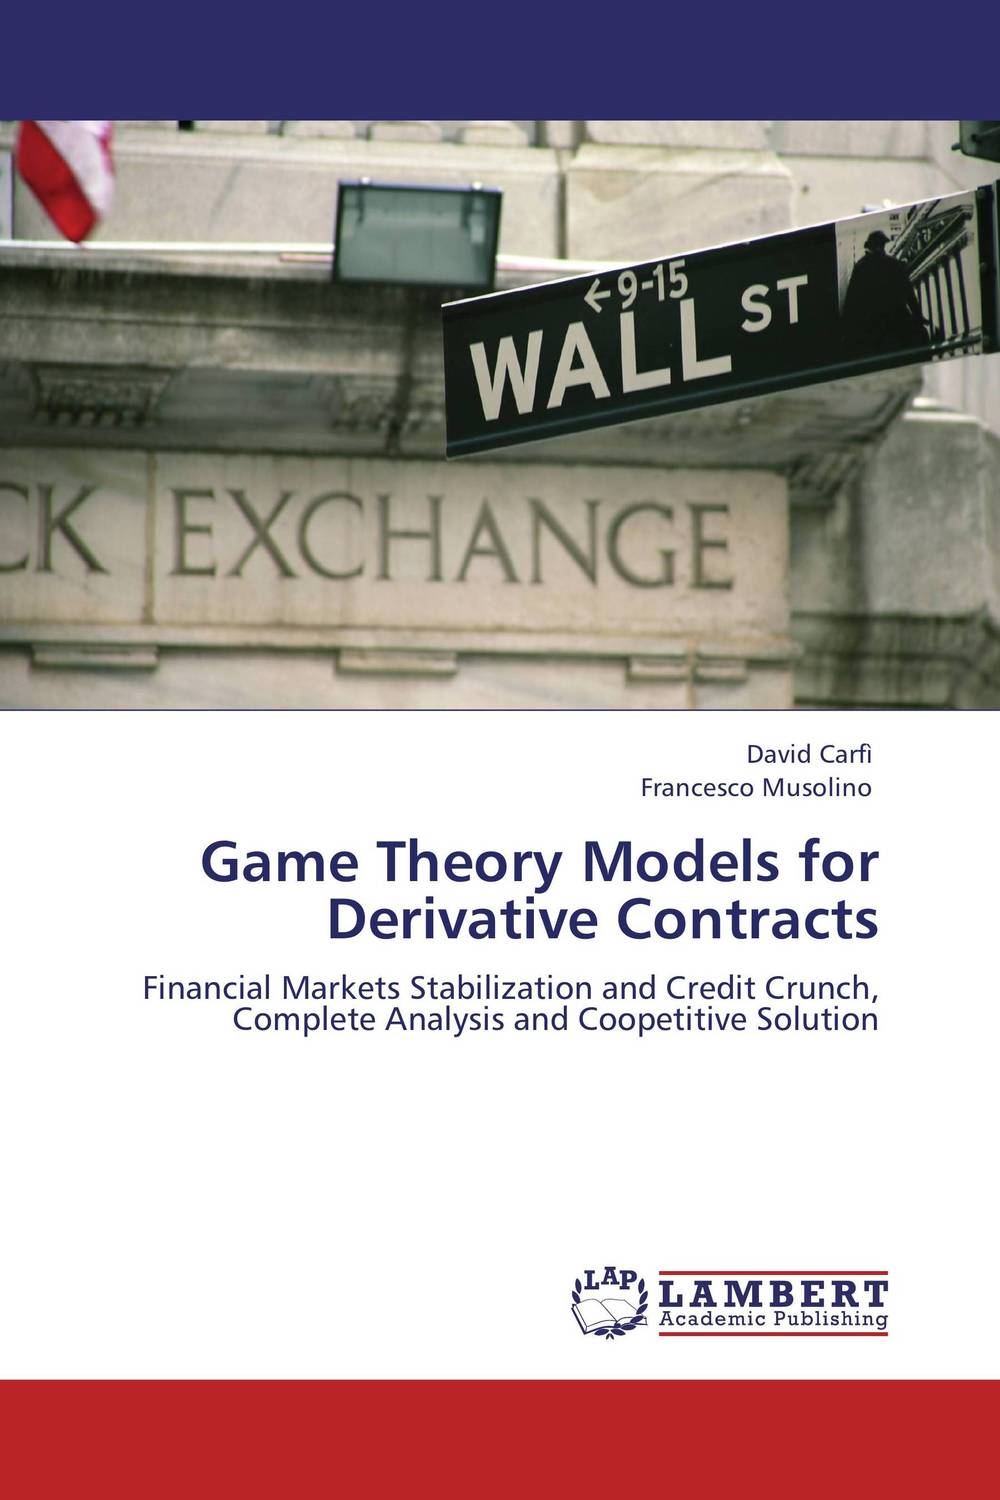 Game Theory Models for Derivative Contracts sanwa button and joystick use in video game console with multi games 520 in 1